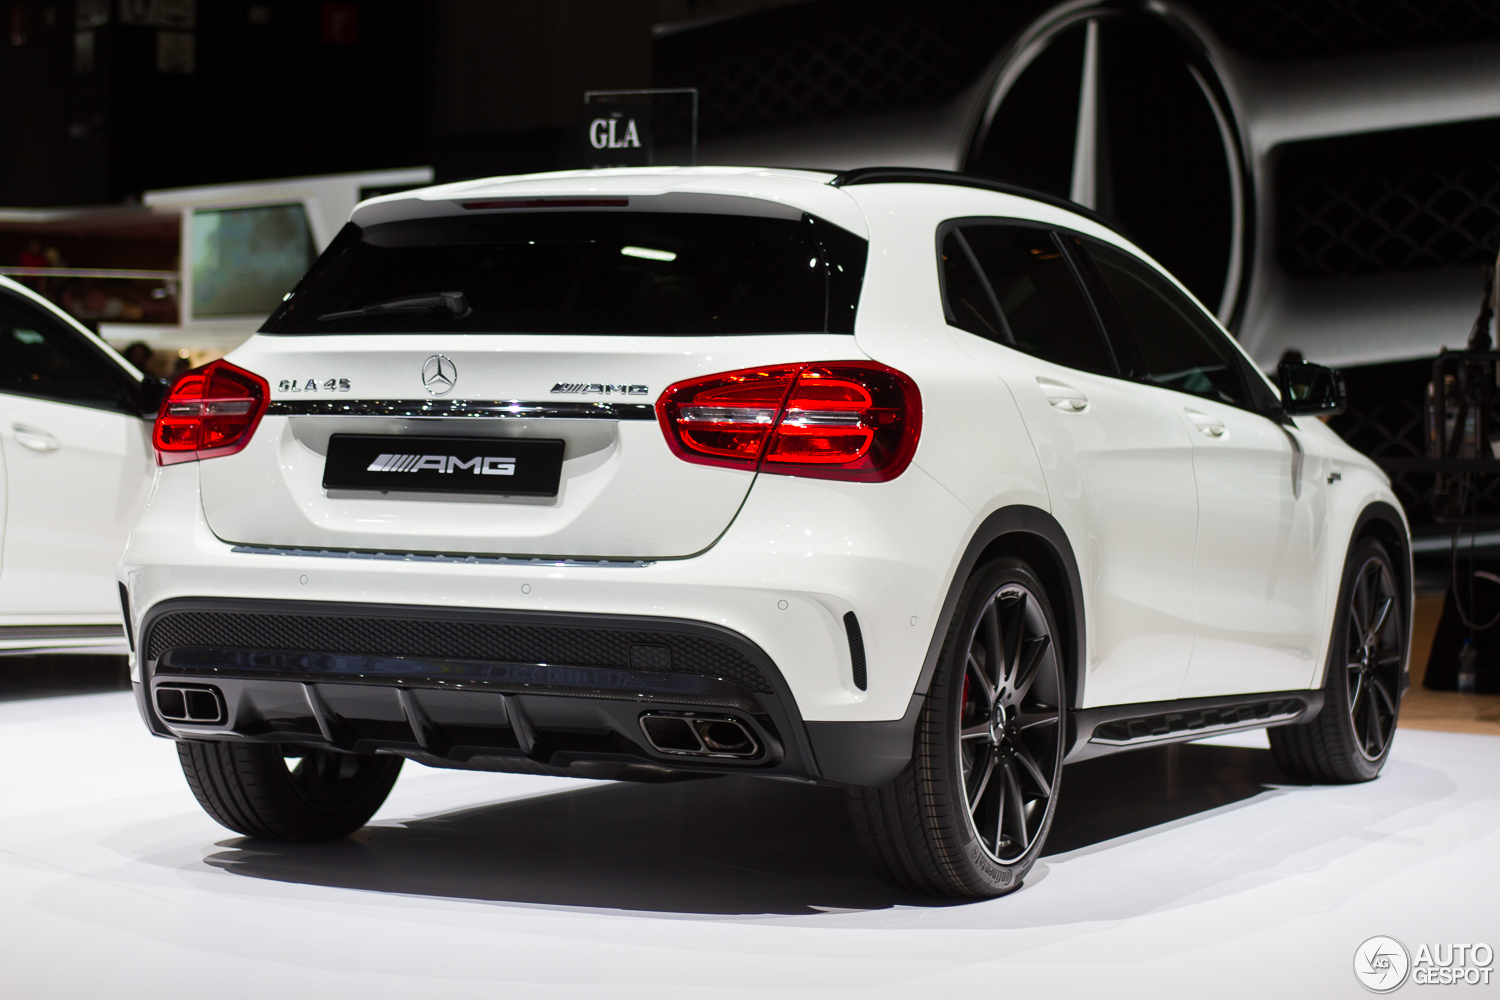 Gen ve 2014 mercedes benz gla 45 amg for Mercedes benz gla 250 price